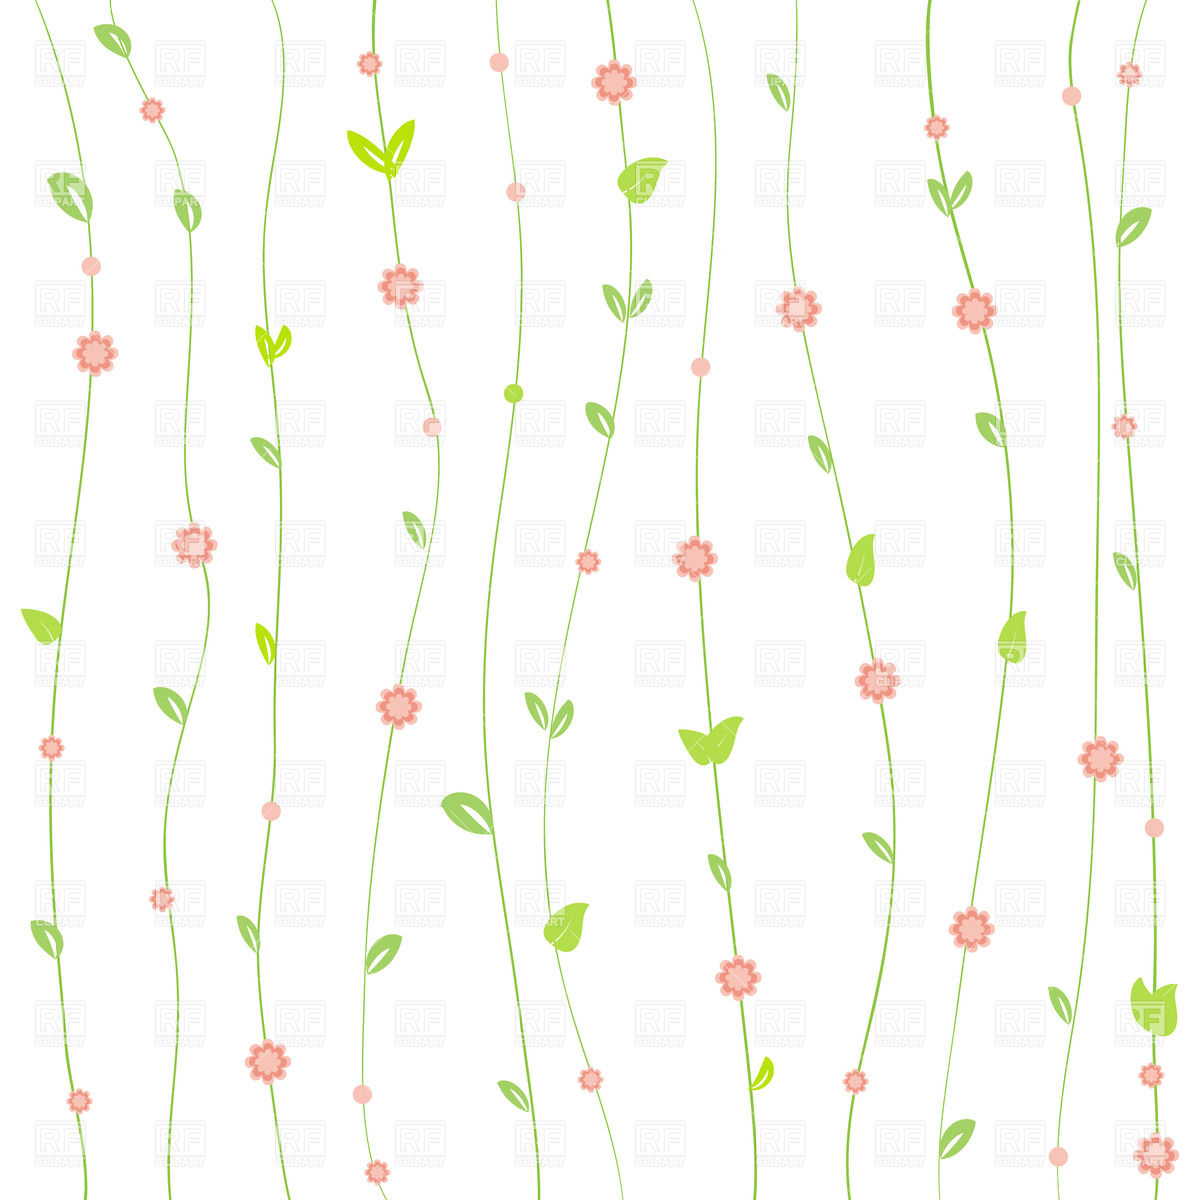 Background Clipart-background clipart-1